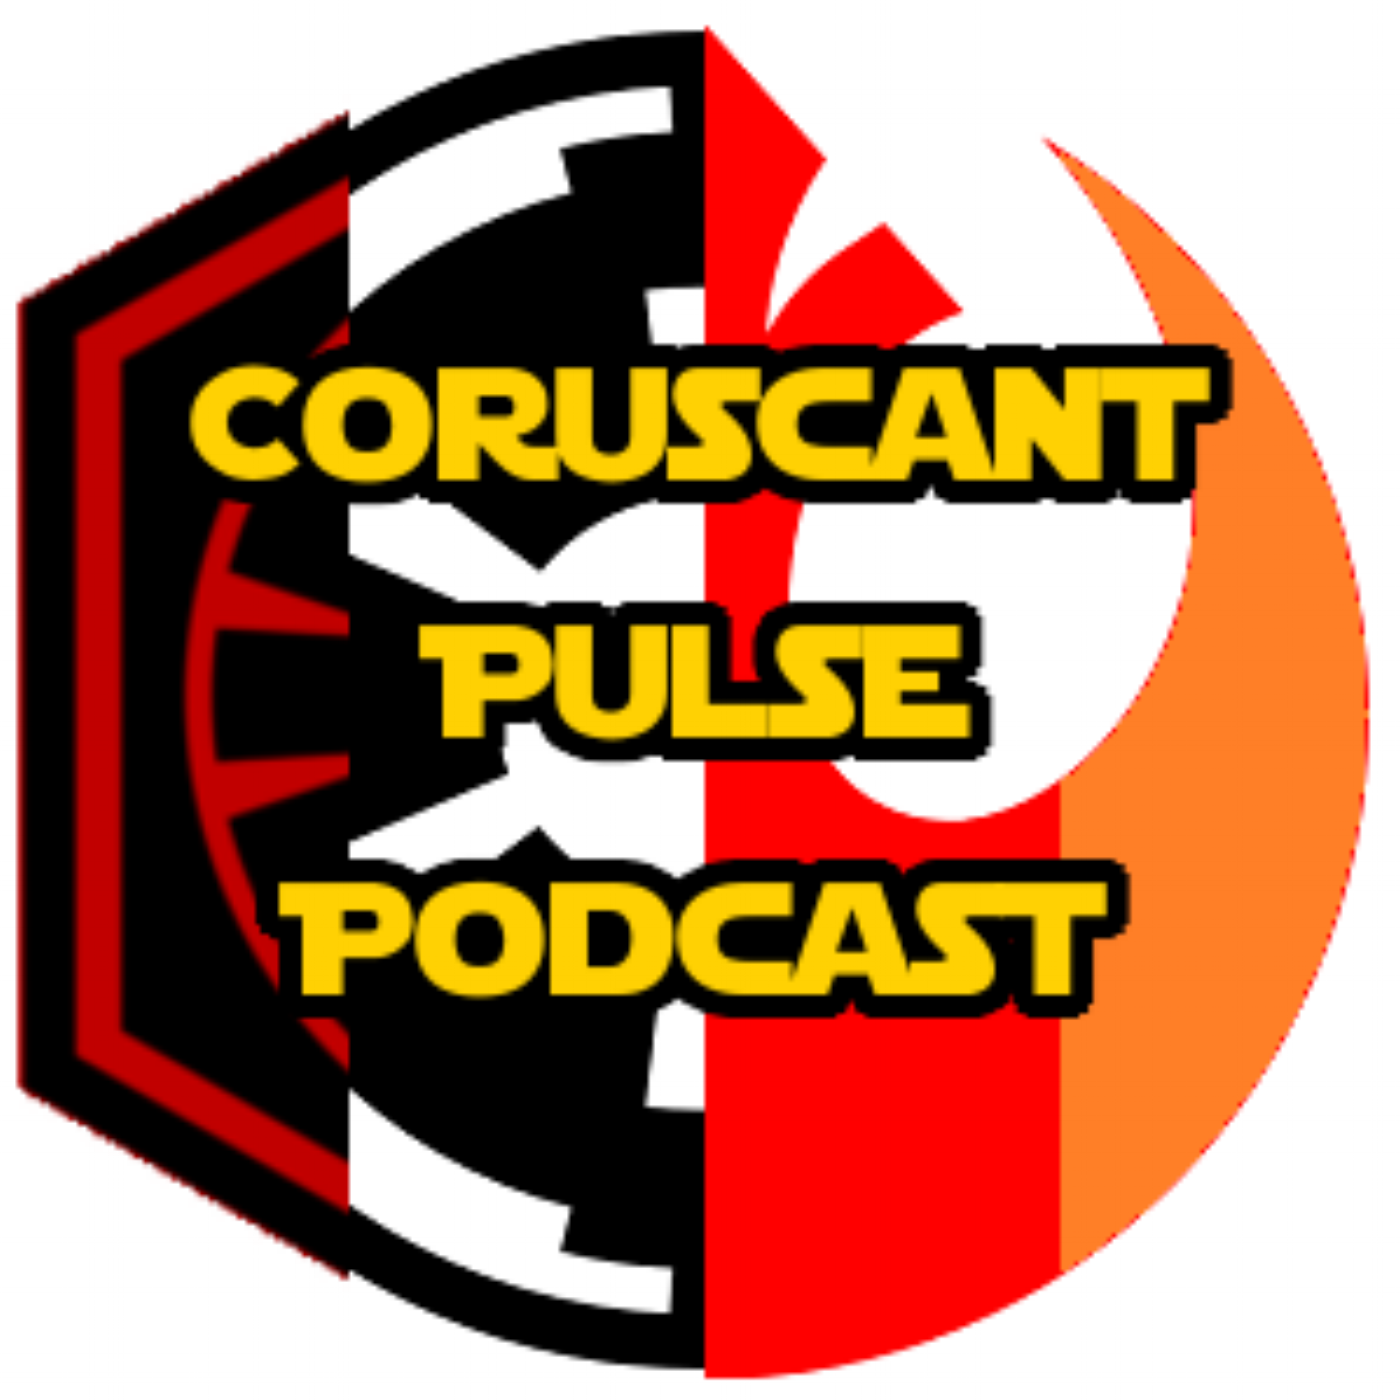 Coruscant Pulse: A Star Wars Podcast